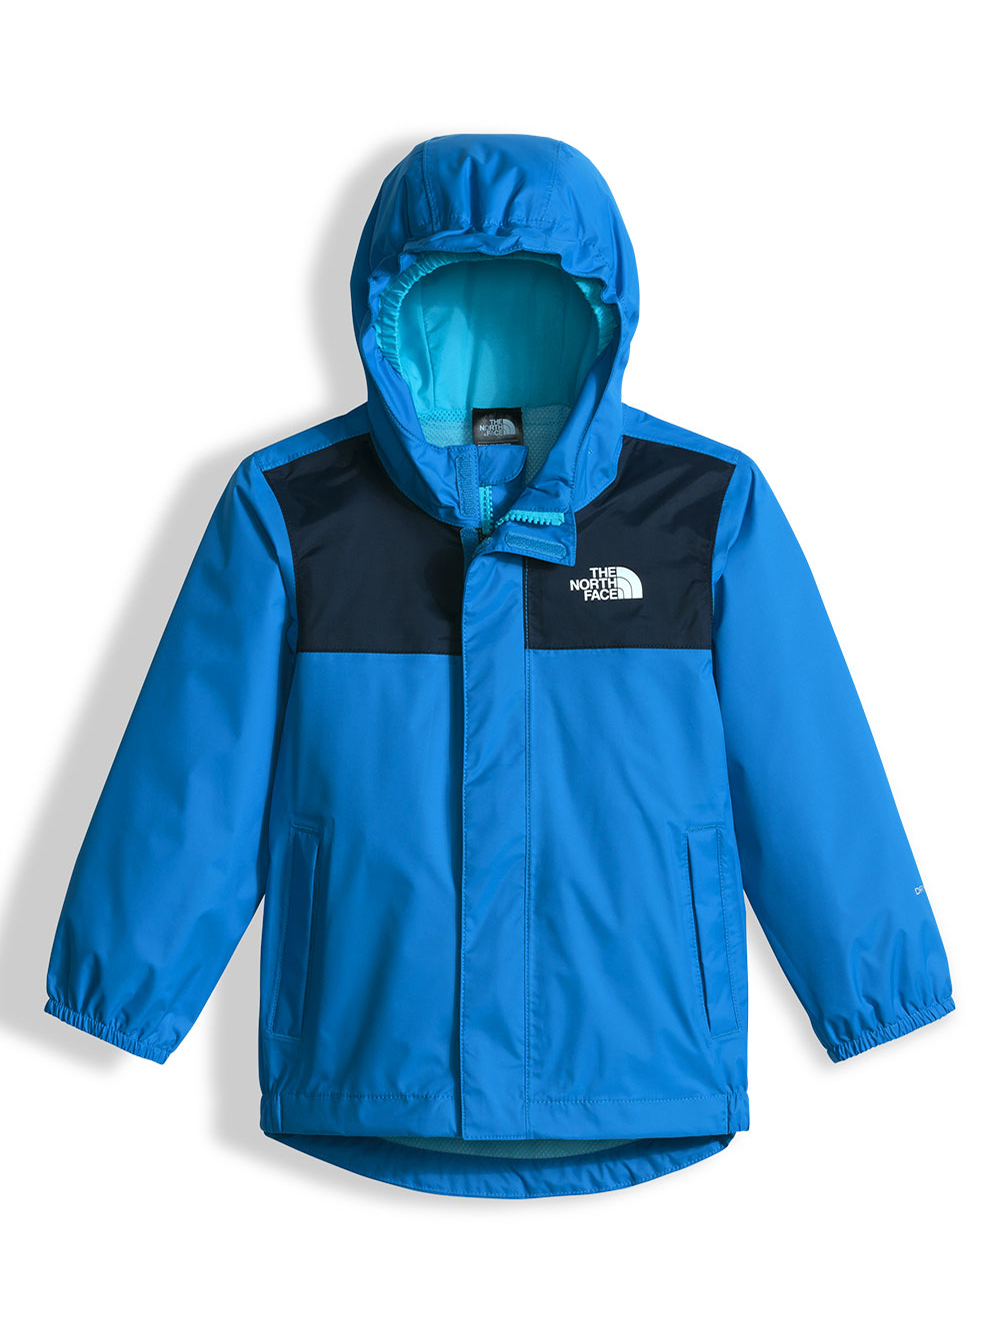 The North Face Little Boys' Toddler Tailout Rain Jacket (Sizes 2T - 4T) - clear lake blue, 2t